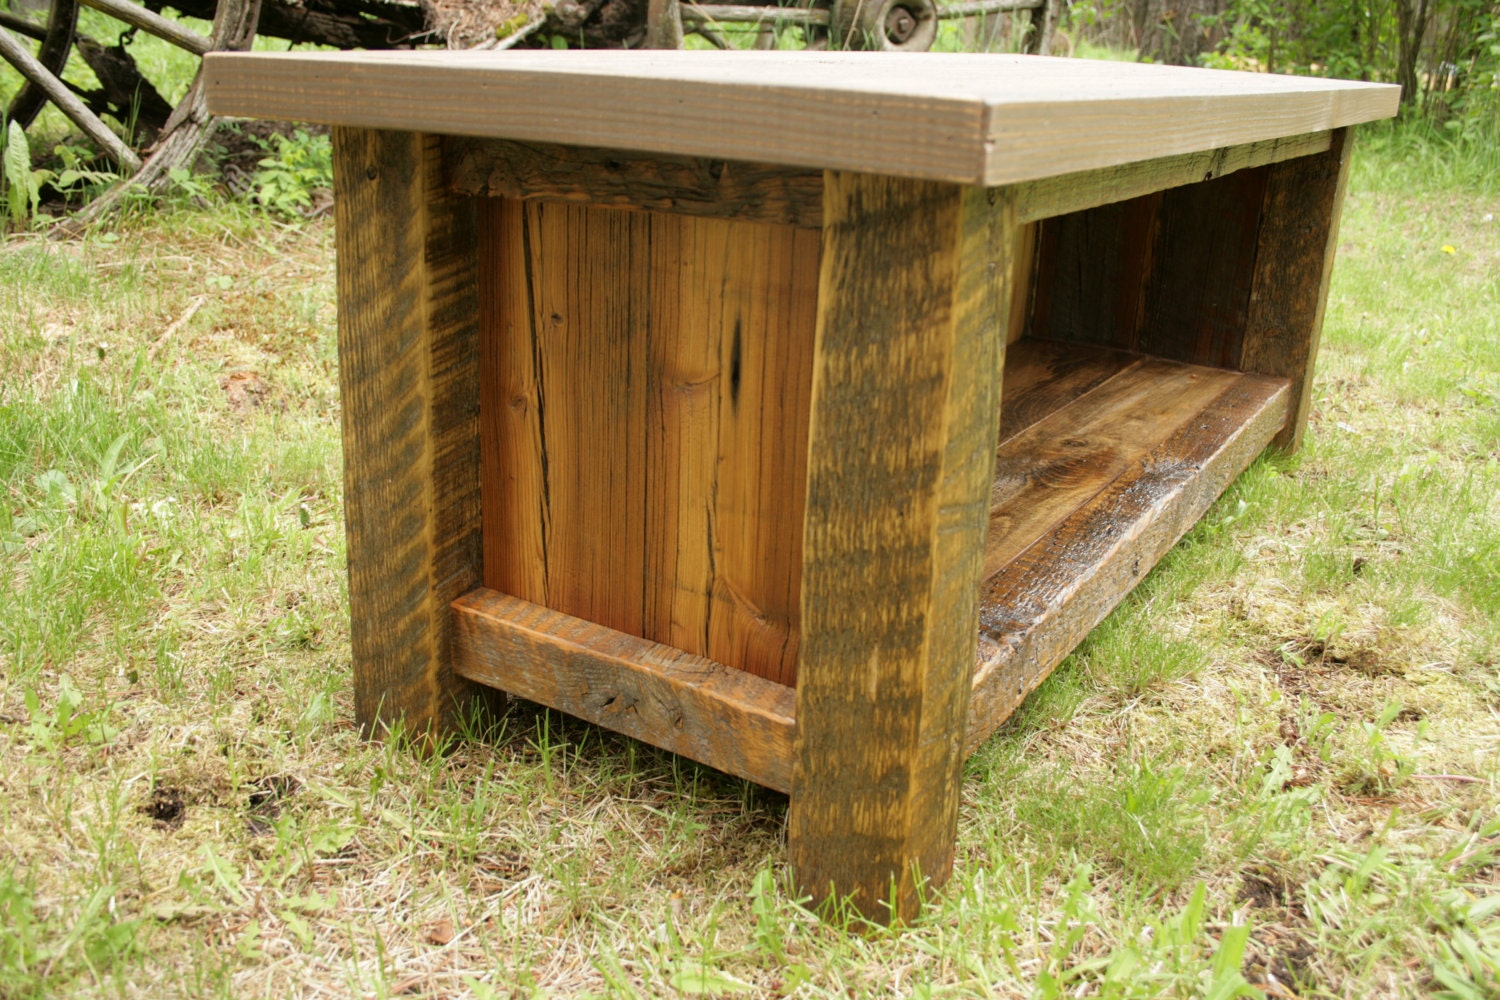 Rustic reclaimed barnwood entry bench by echopeakdesign on